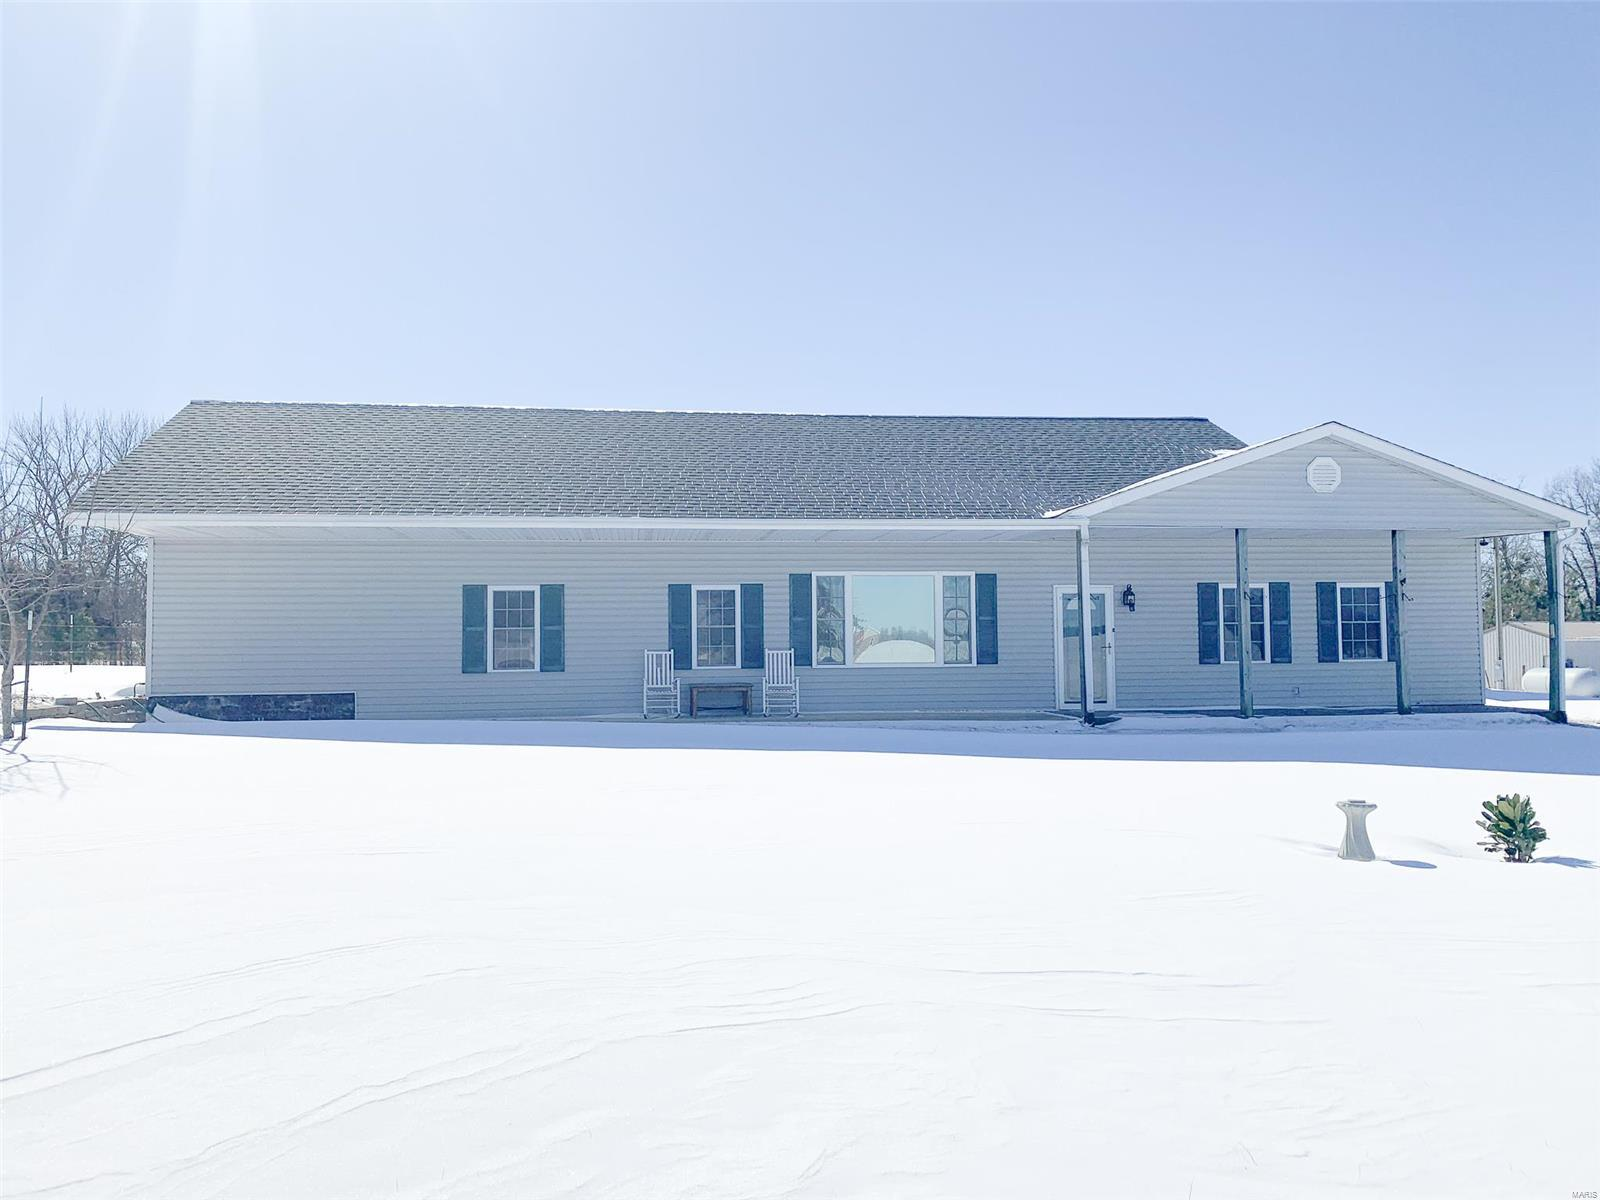 2931 Clarks Branch Property Photo - Williamsburg, MO real estate listing